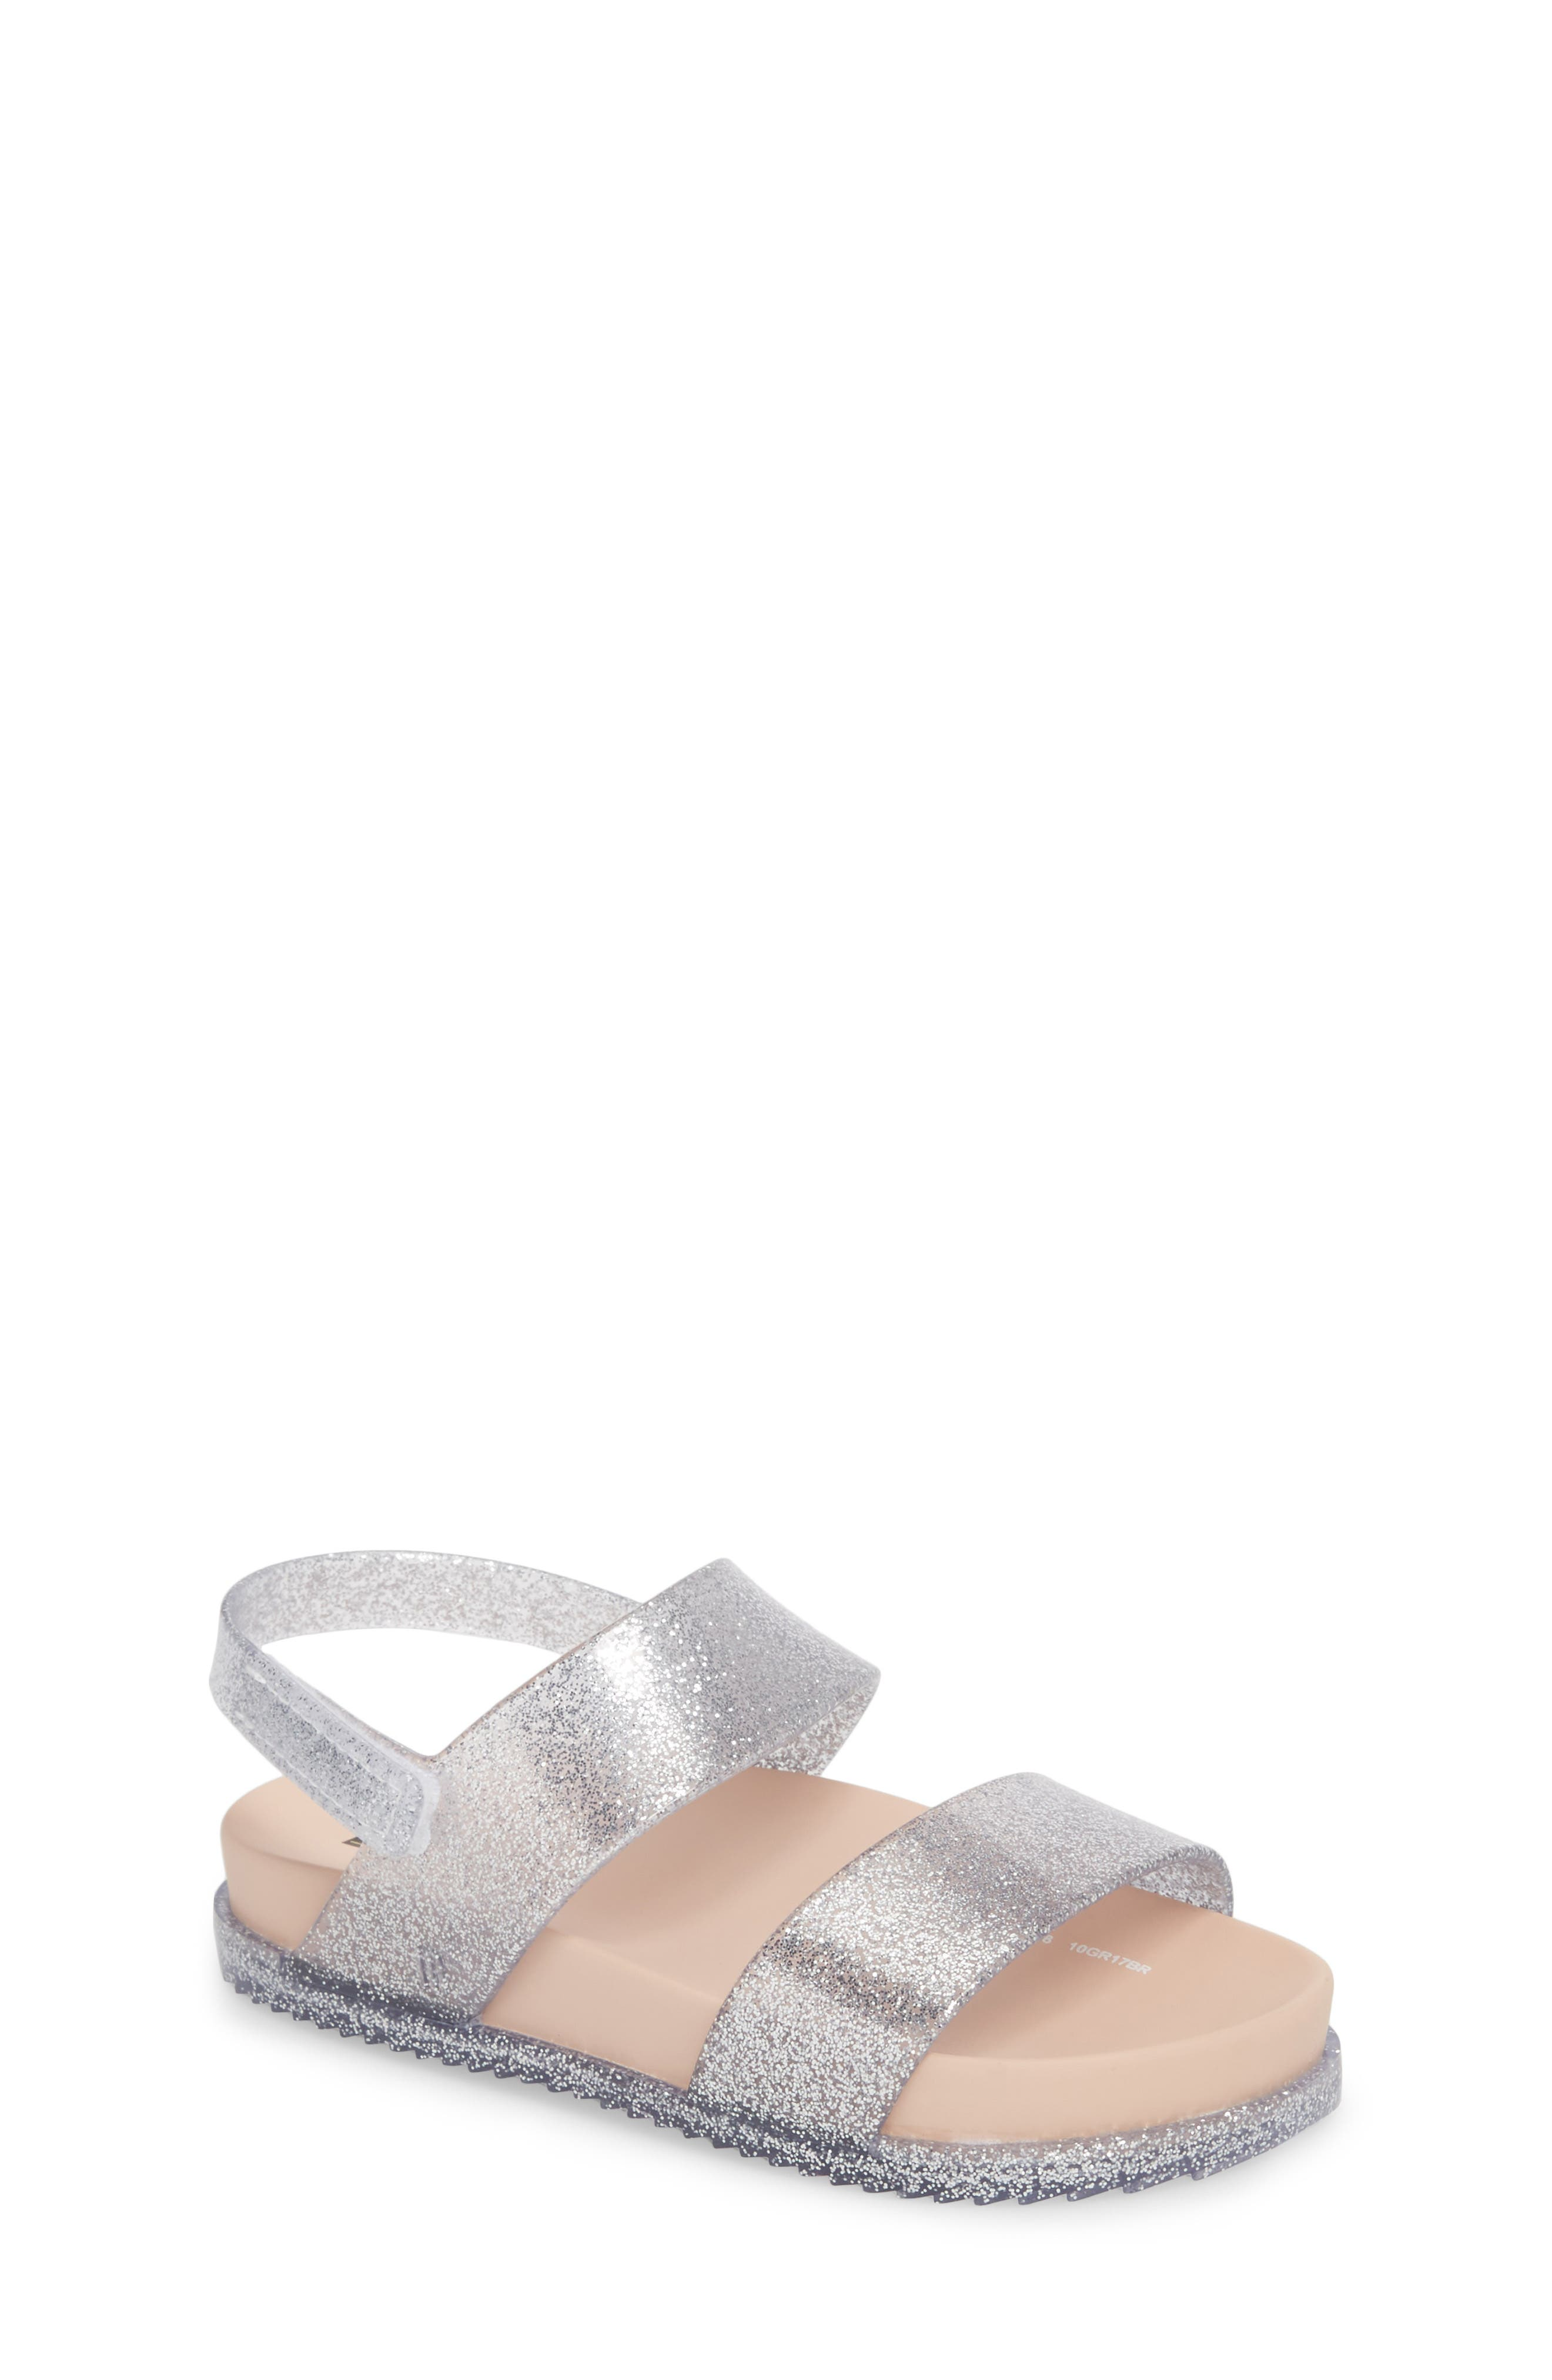 Glittery Cosmic Sandal,                             Main thumbnail 1, color,                             Pink Silver Sparkle